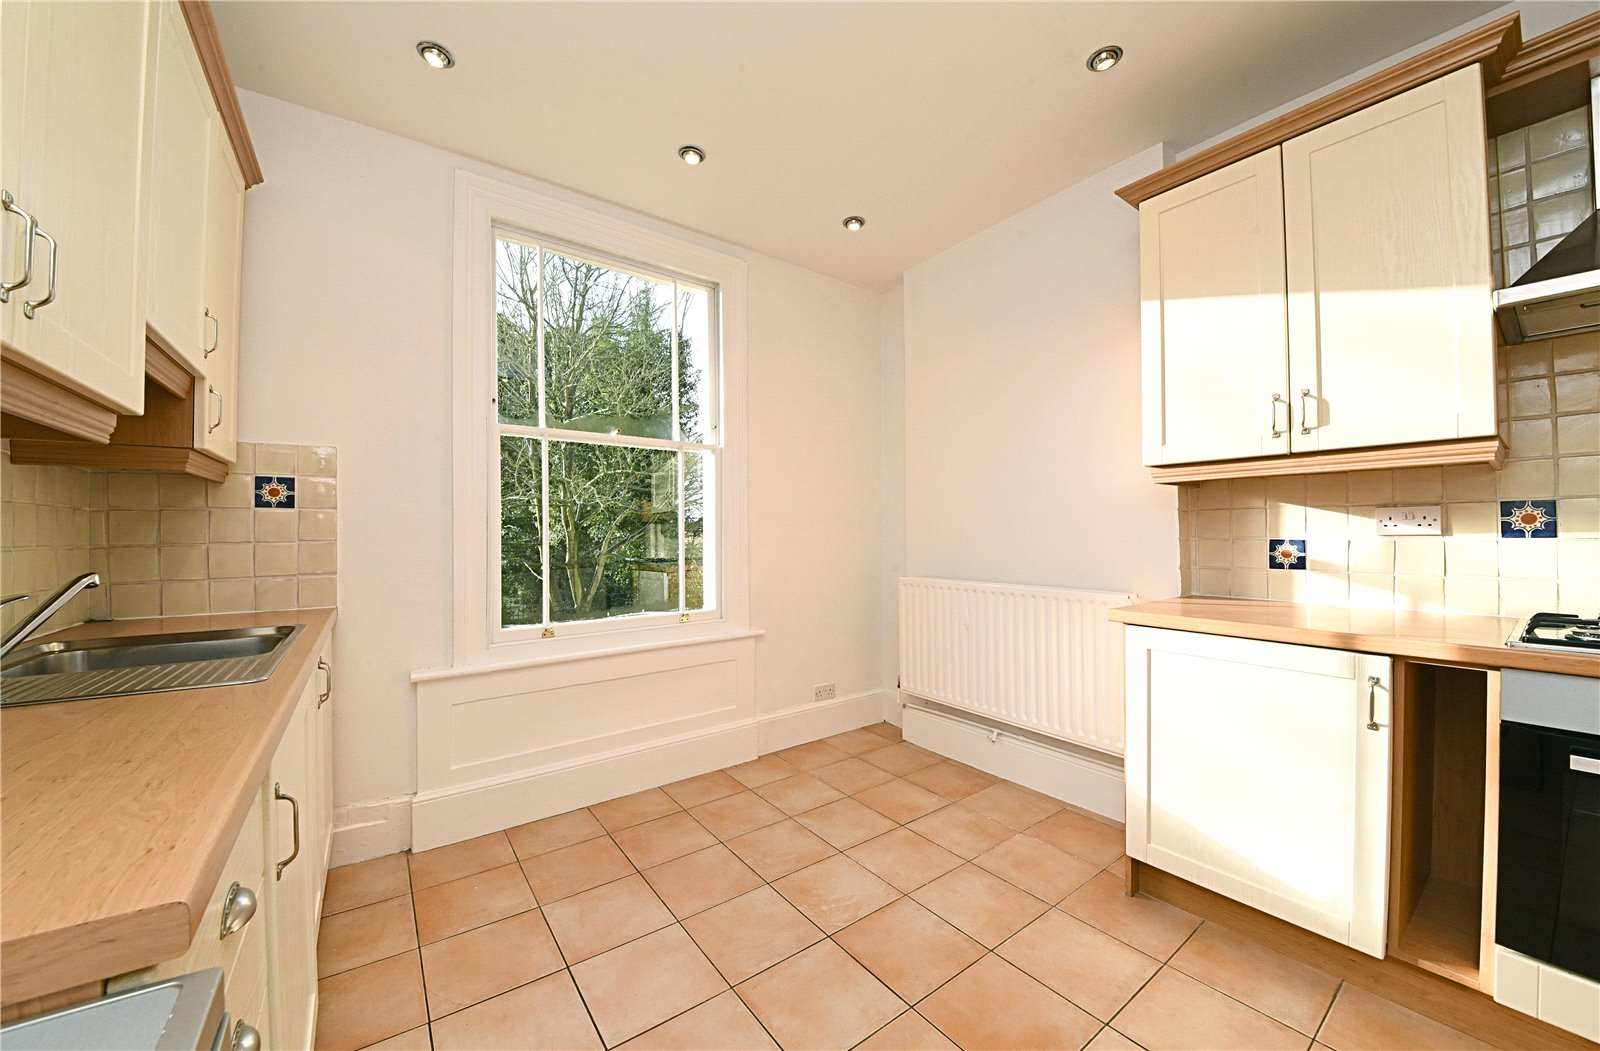 3 bed apartment to rent in Wood Street, High Barnet 2